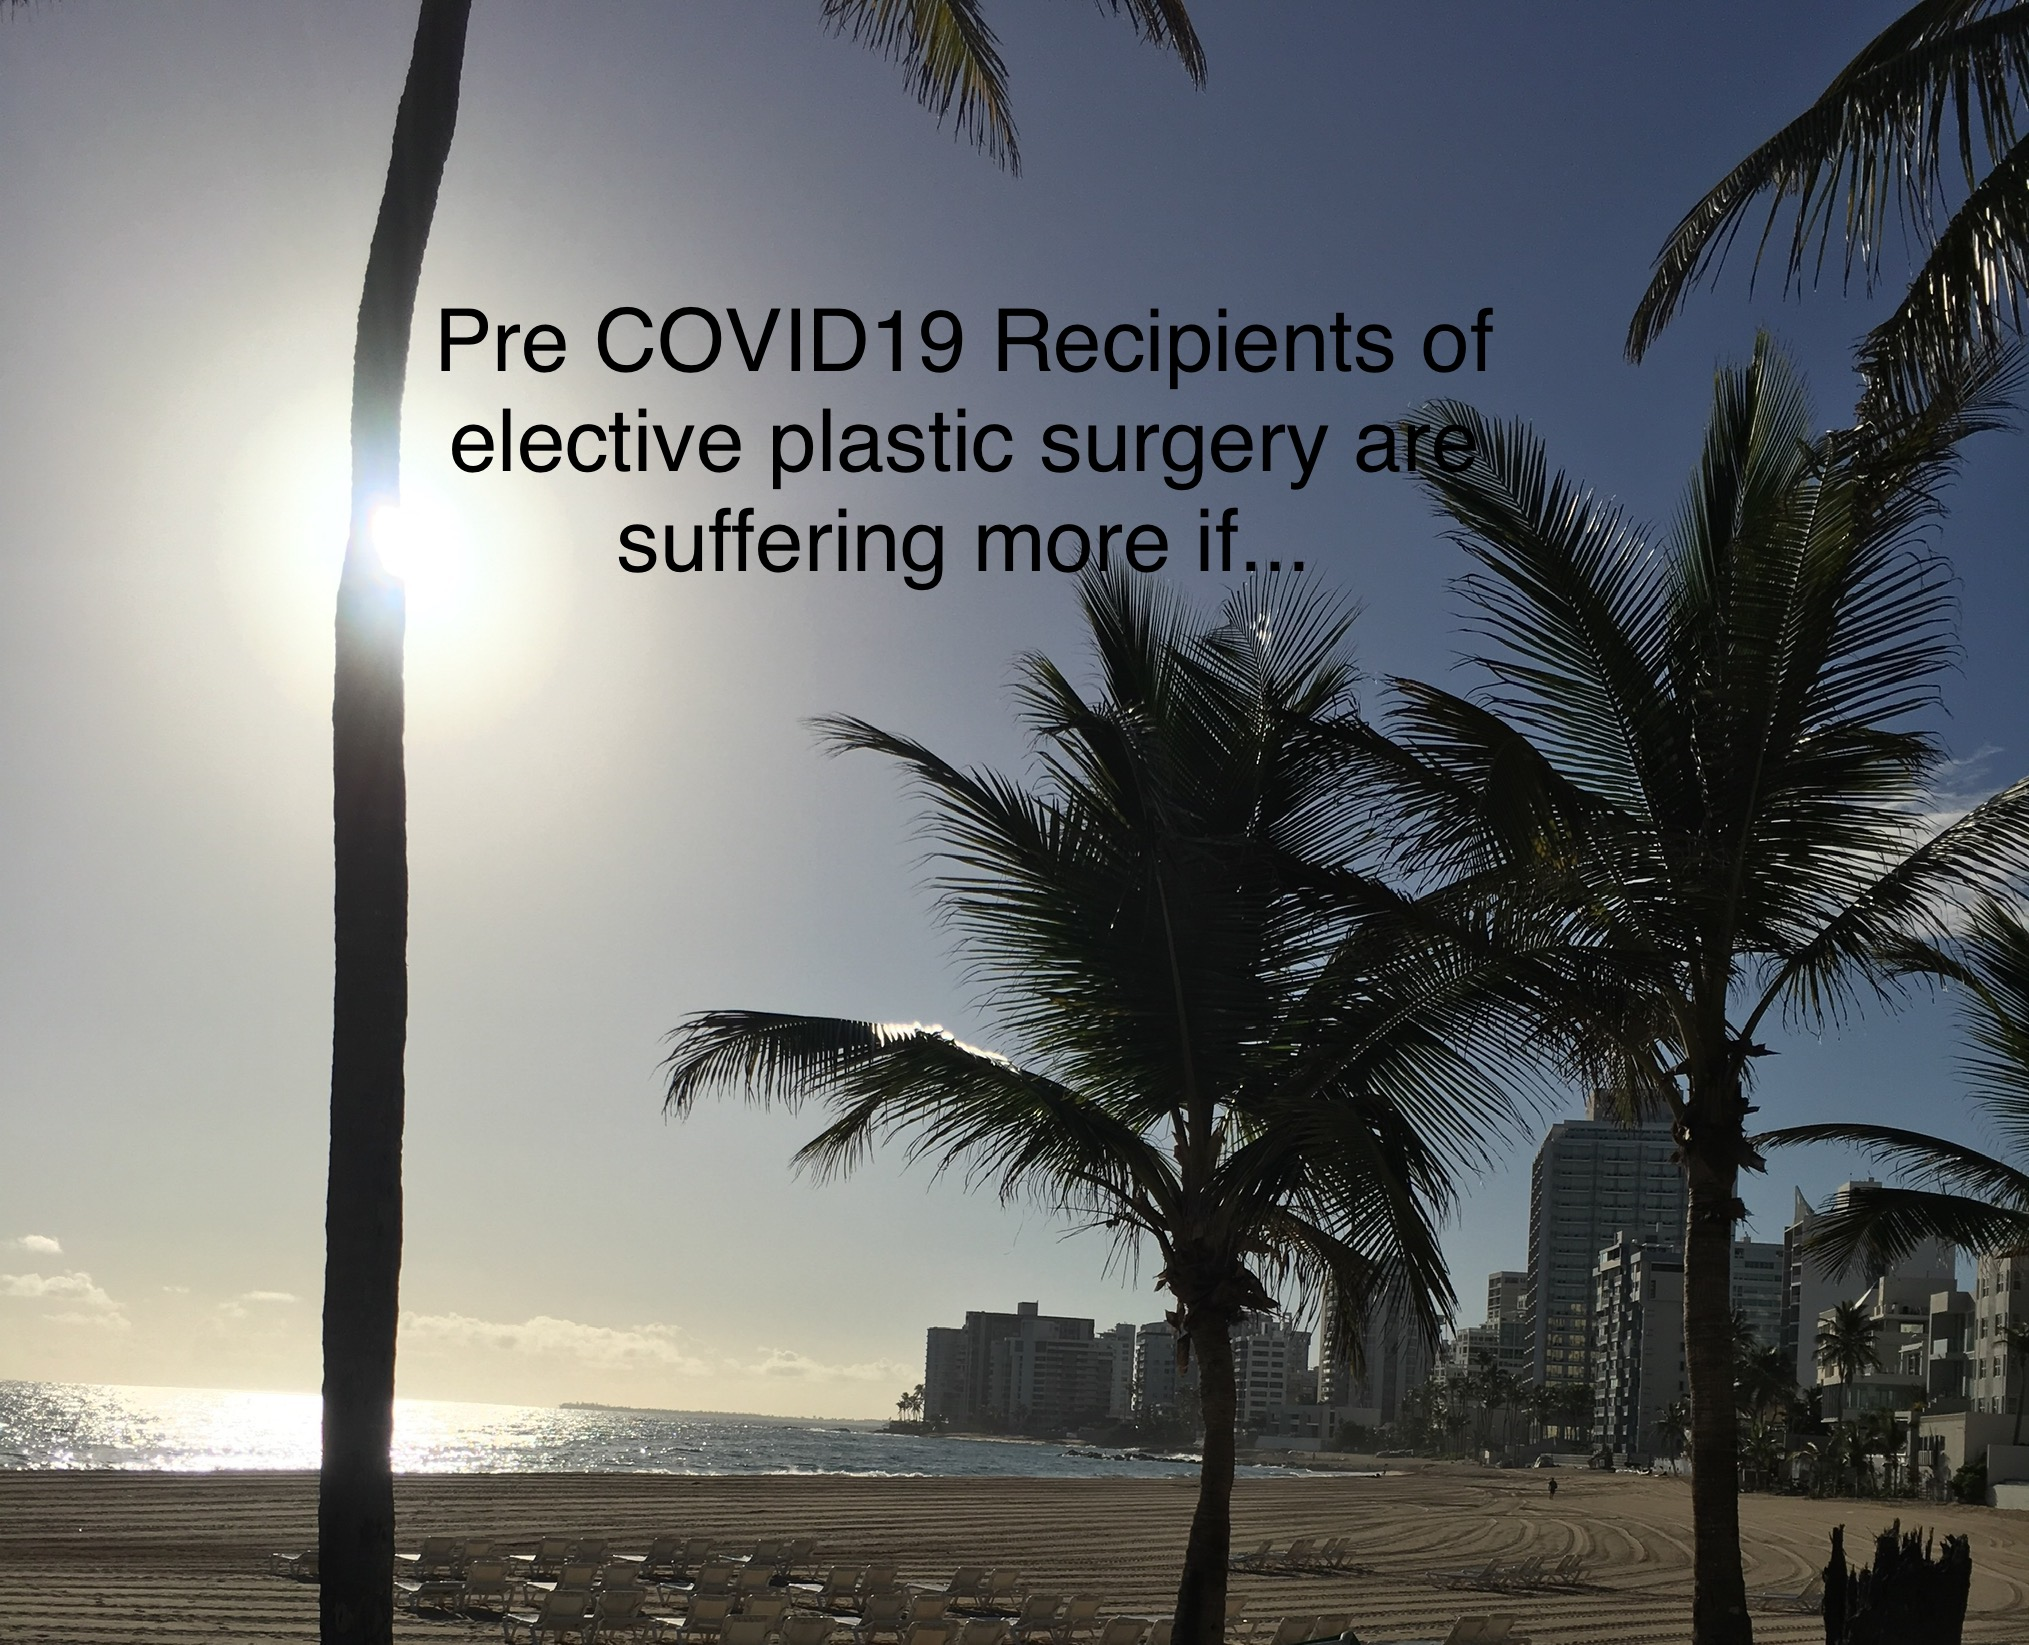 Pre COVID19 recipients of elective plastic surgery are suffering more if…